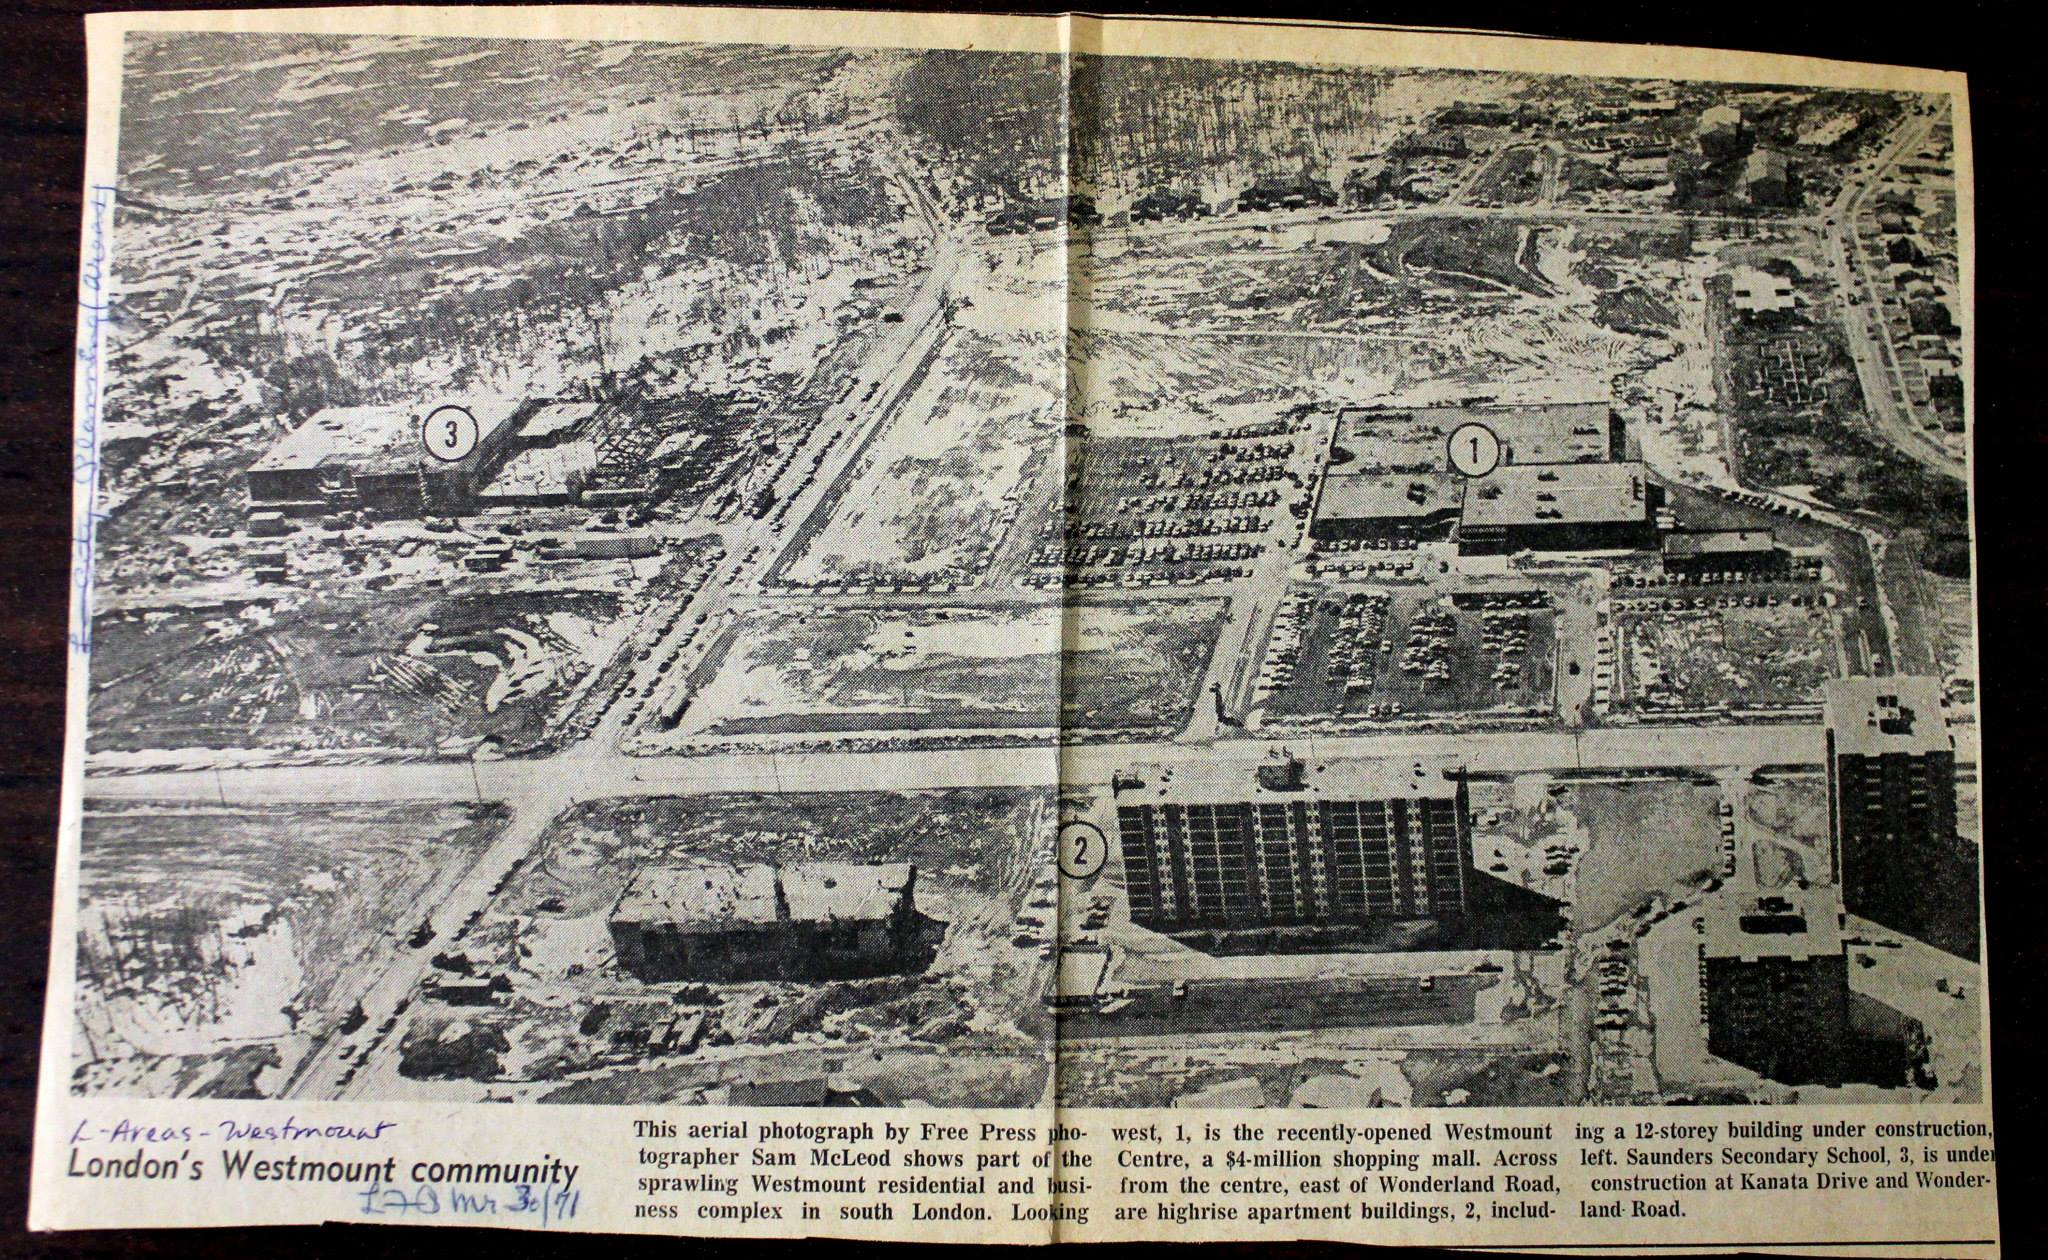 A black and white newspaper clipping with an aerial photo of Westmount, showing several high rises and an intersection.